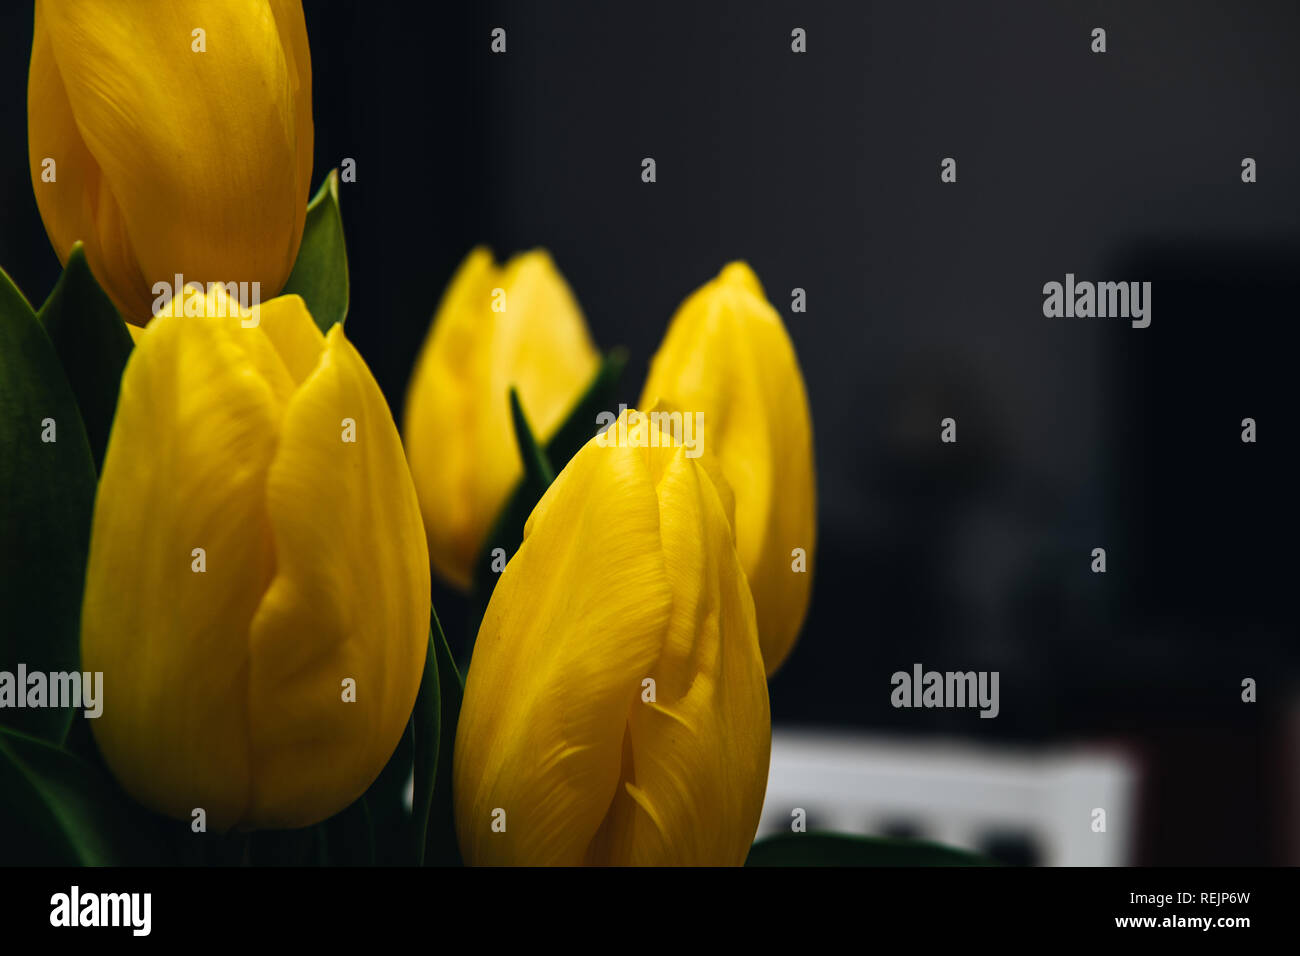 Close-up of mesmerizing yellow tulips bouquet against dark background arranged asymmetrically reminding of the splendor of spring season vividness - Stock Image